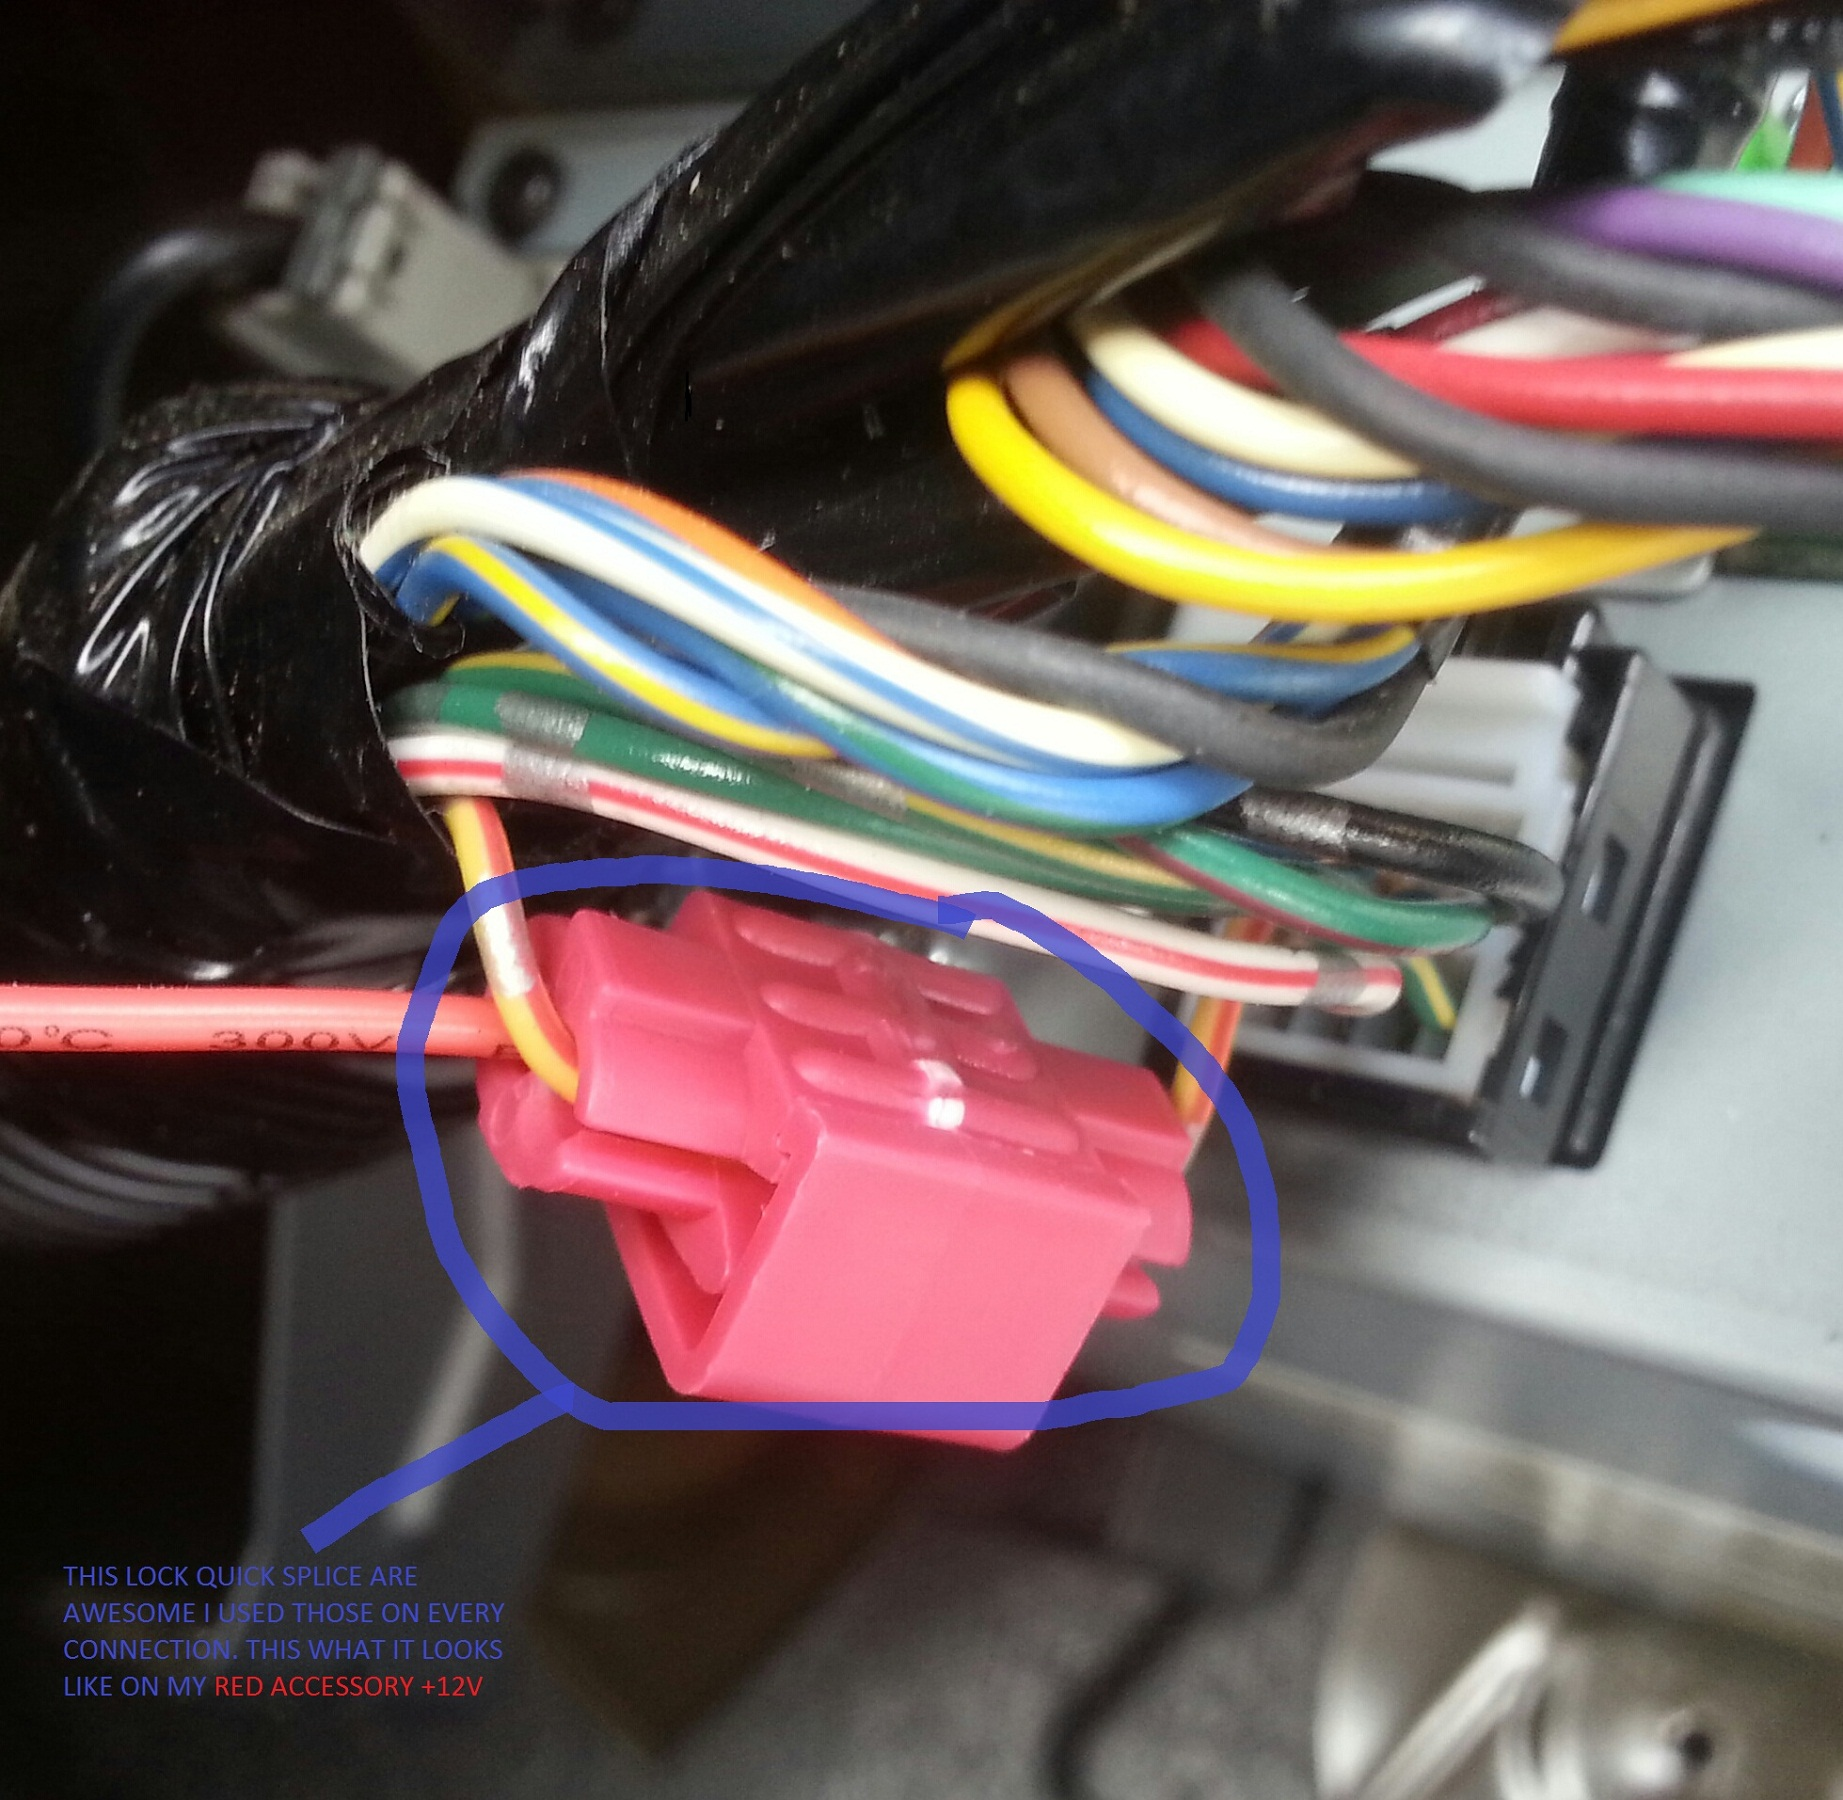 2009 Acura Mdx Navigation Wiring Diagram from static-cdn.imageservice.cloud